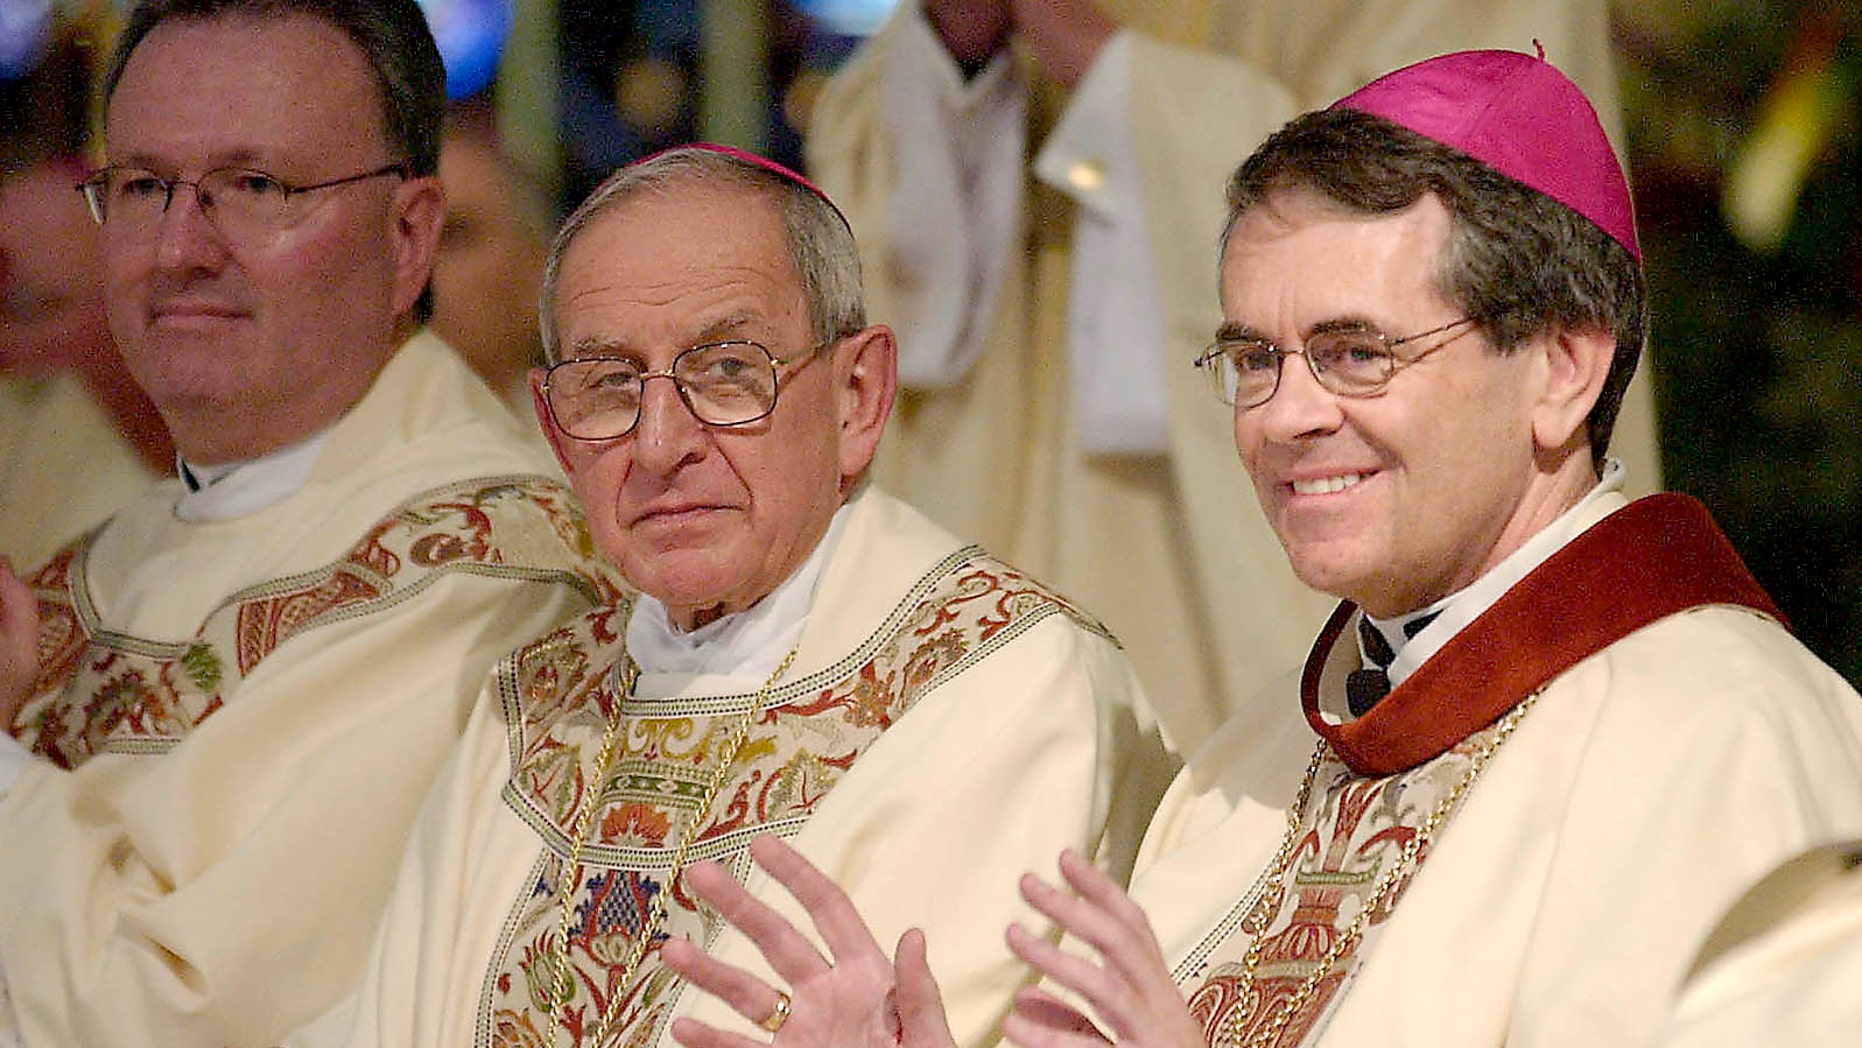 Bishop George Thomas, right, in a June 4, 2004 file photo.